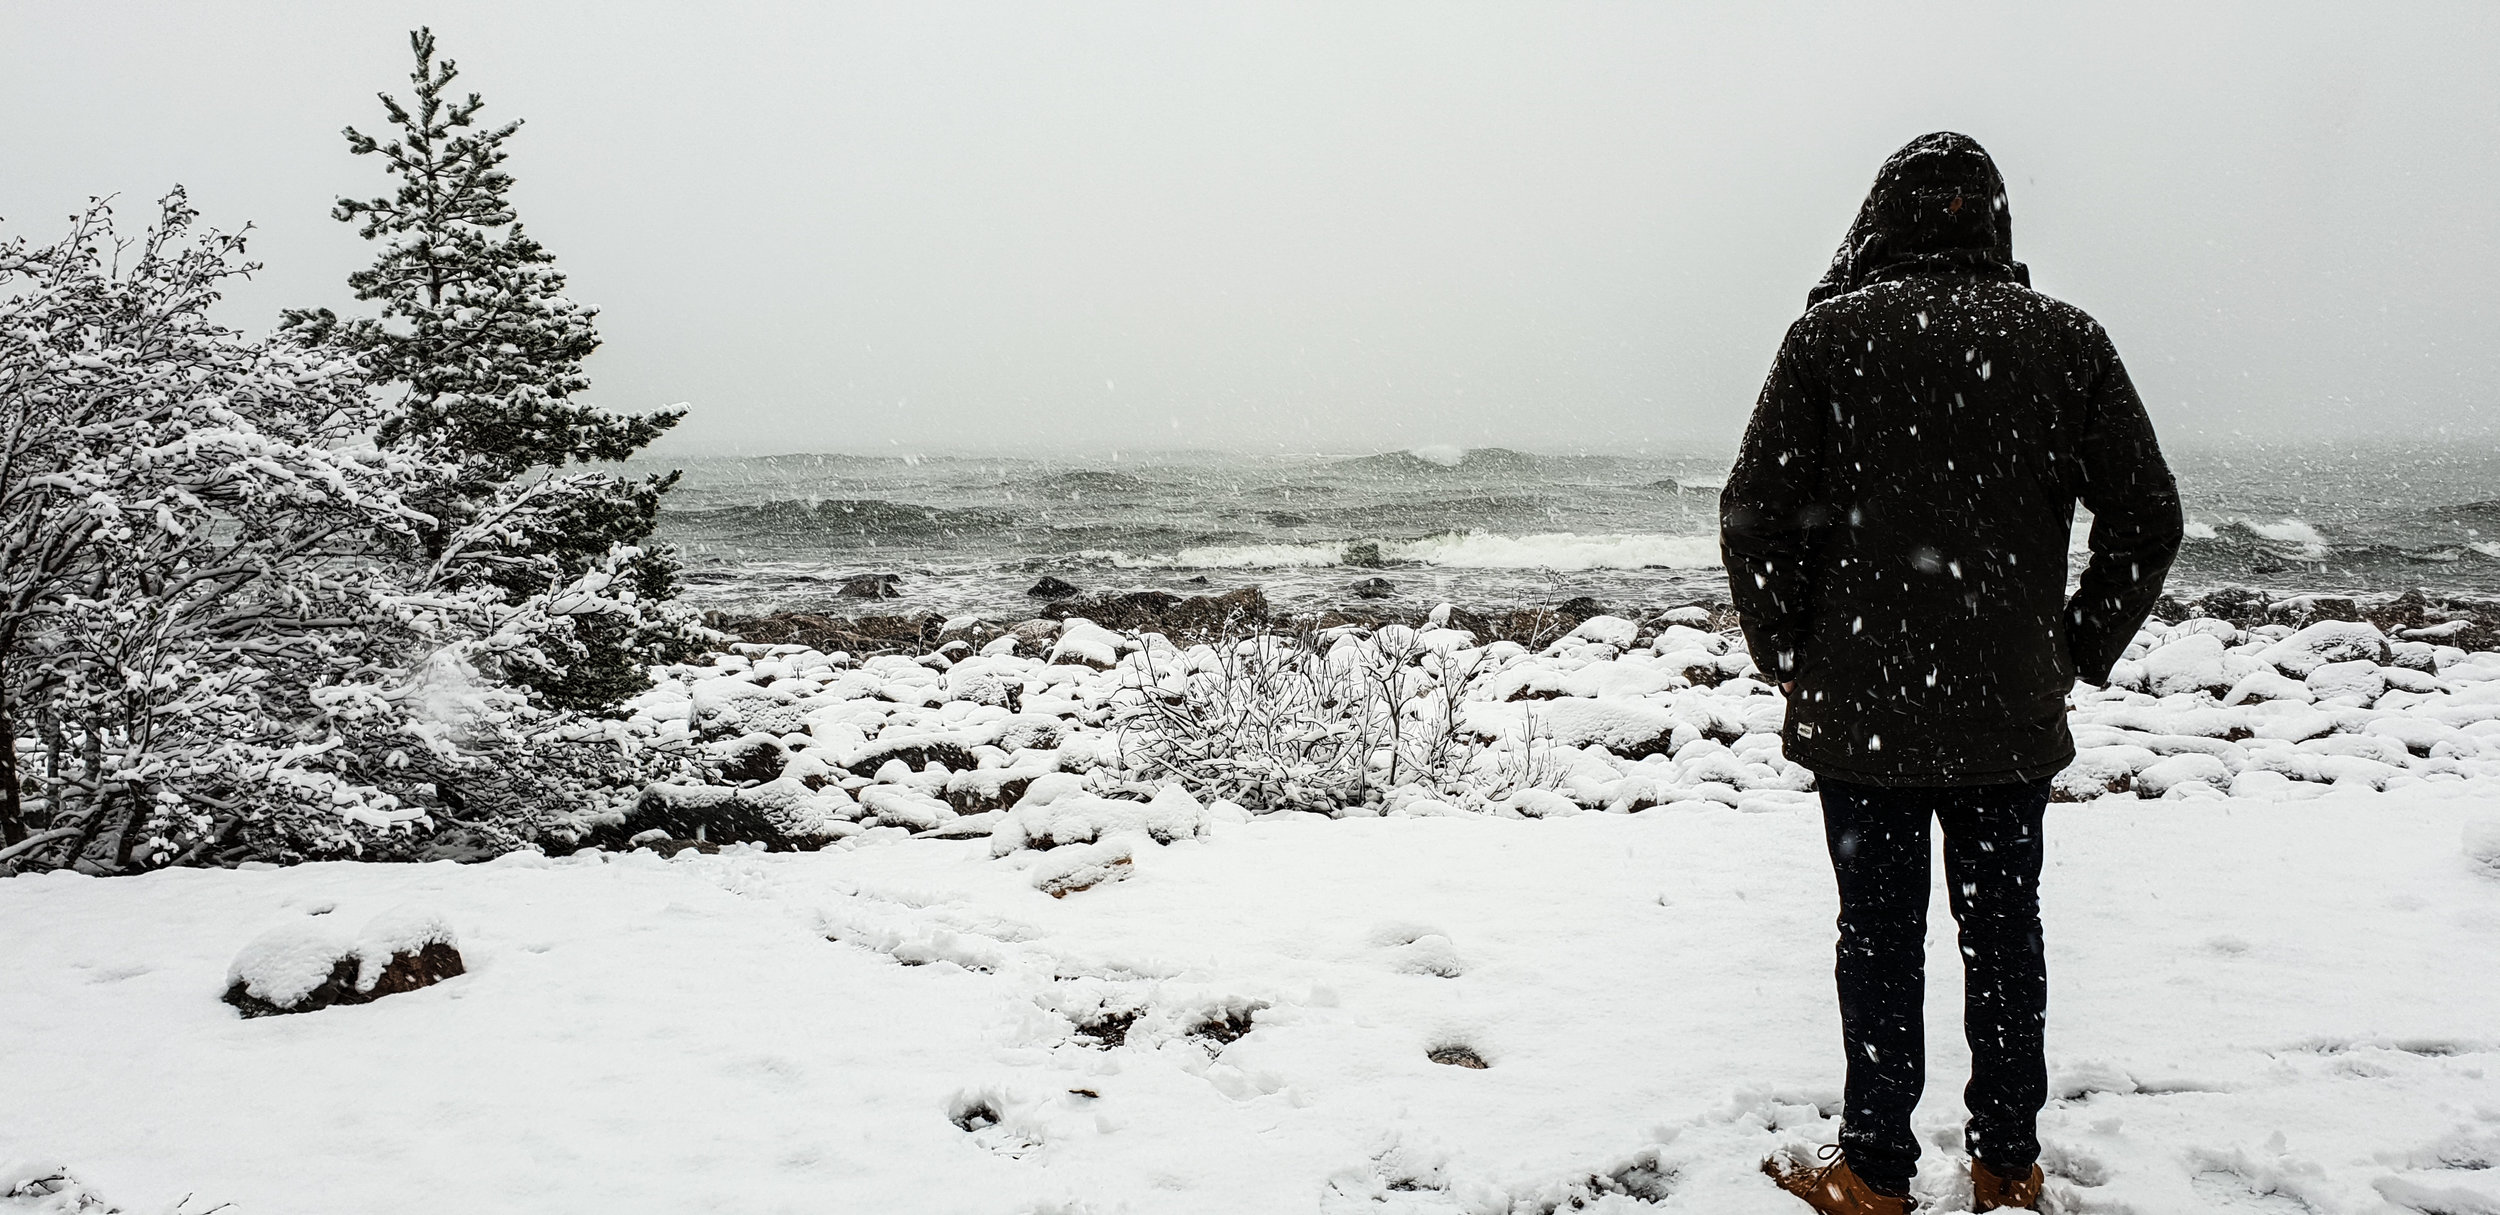 Onshore and snowing, a typical surf check in Norway.